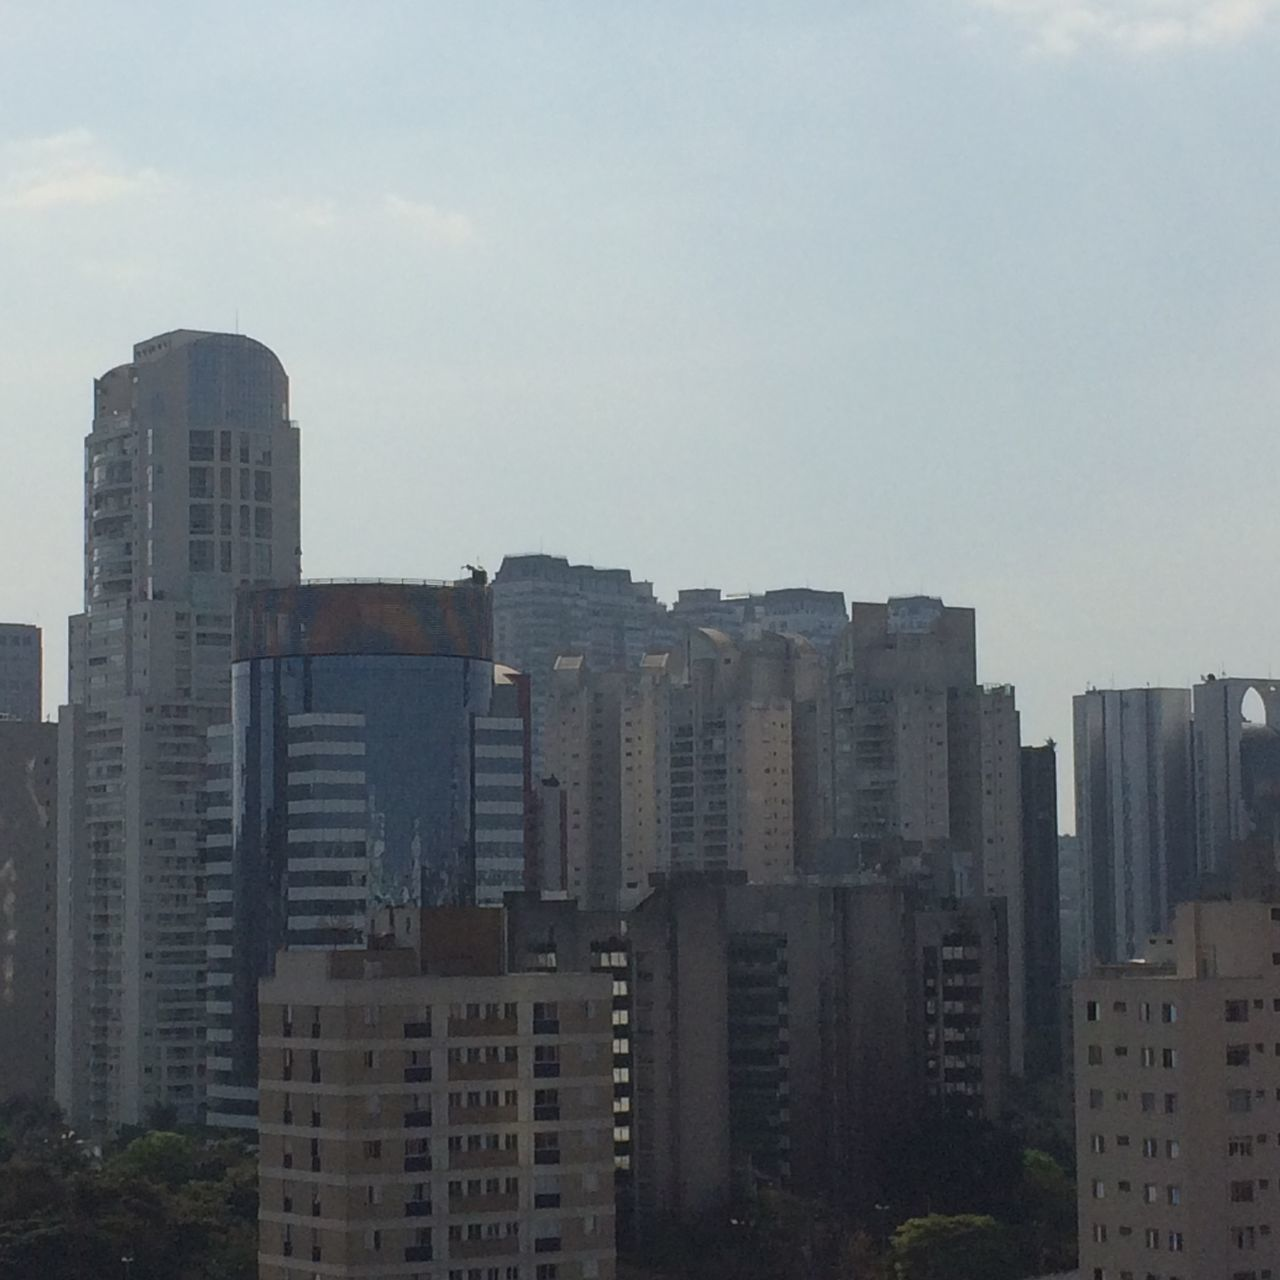 architecture, cityscape, skyscraper, city, modern, no people, building exterior, sky, outdoors, day